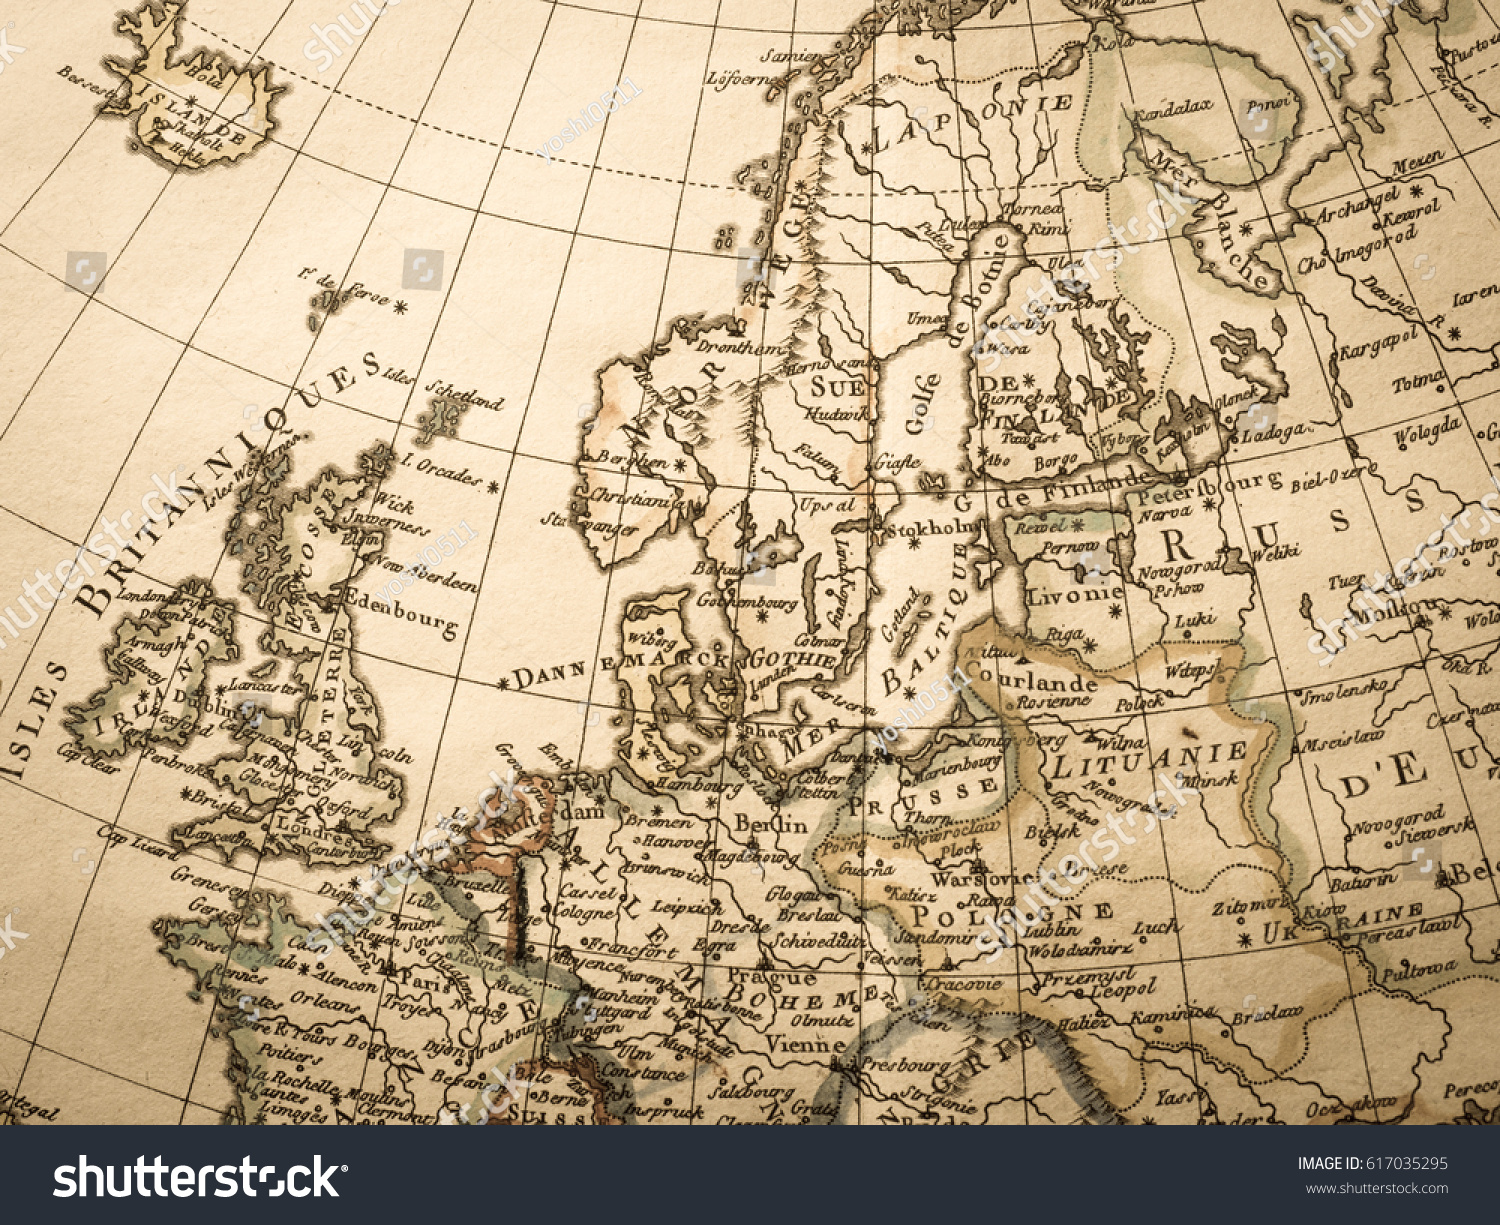 Antique world map northern europe stock photo safe to use antique world map northern europe gumiabroncs Images